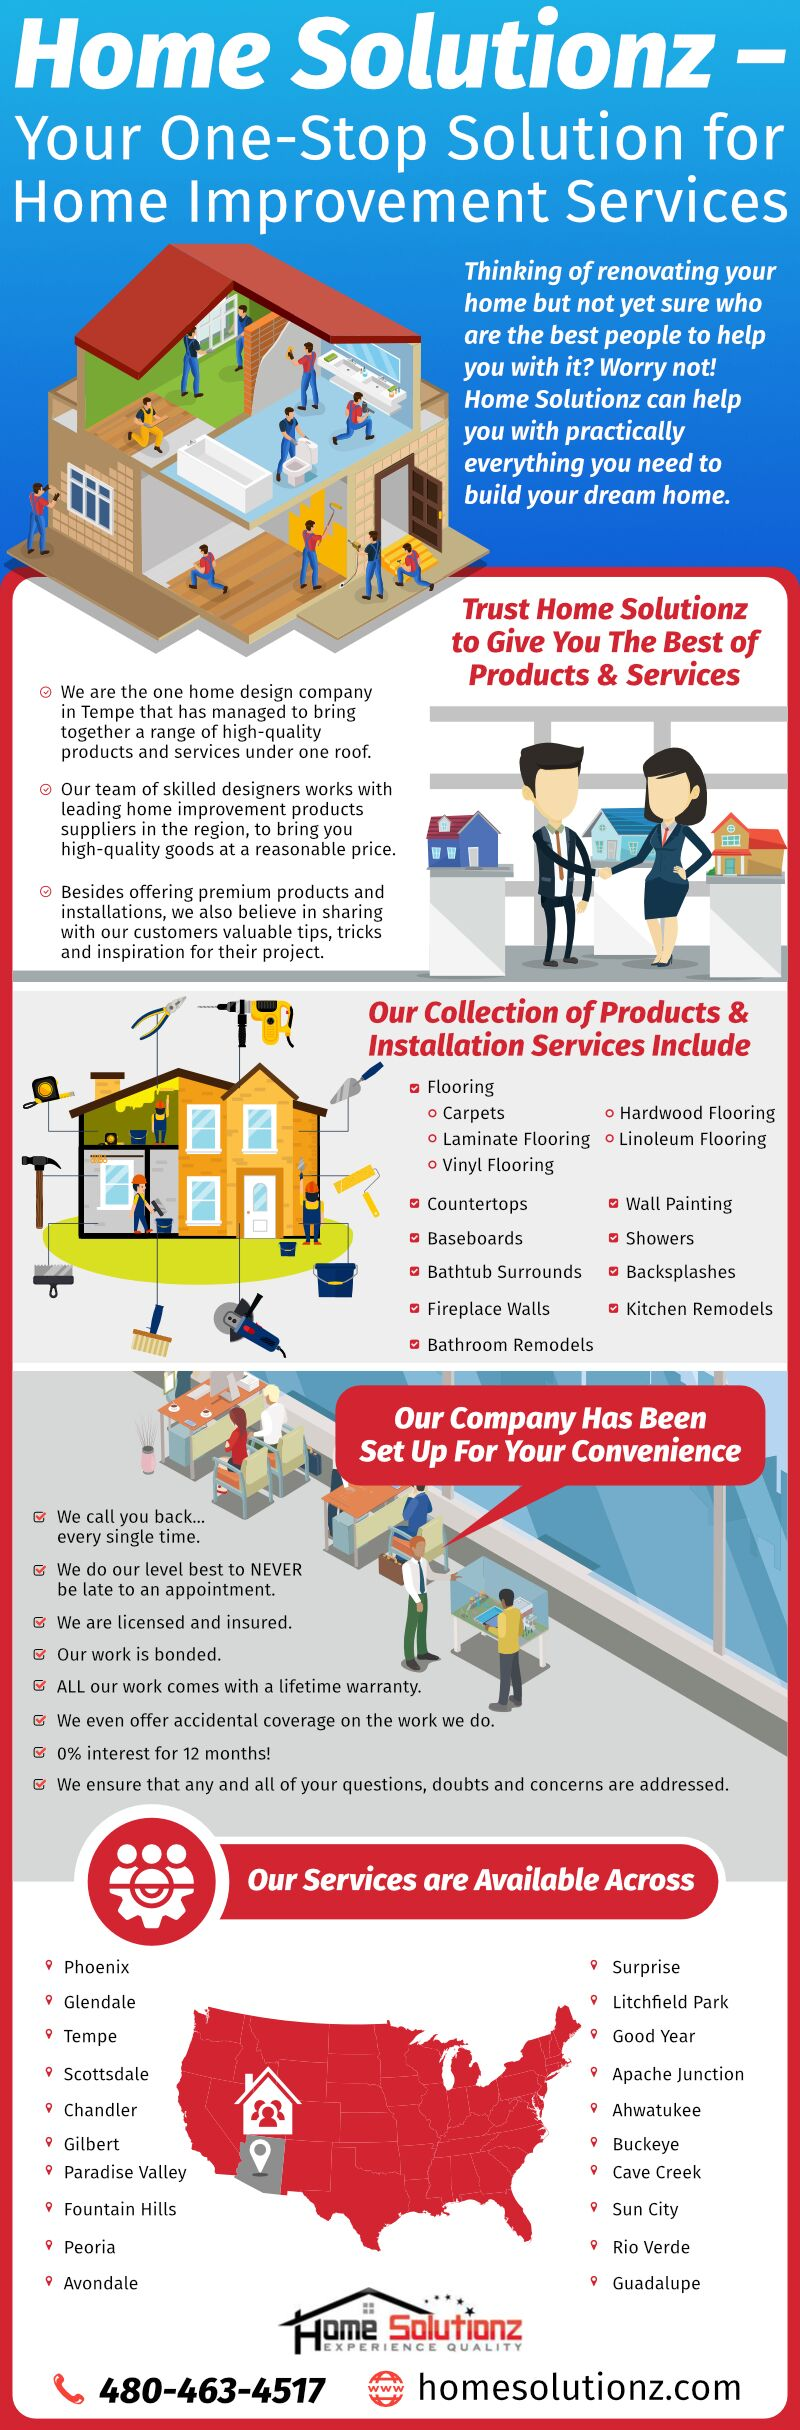 Your One-Stop Solution for Home Improvement Services